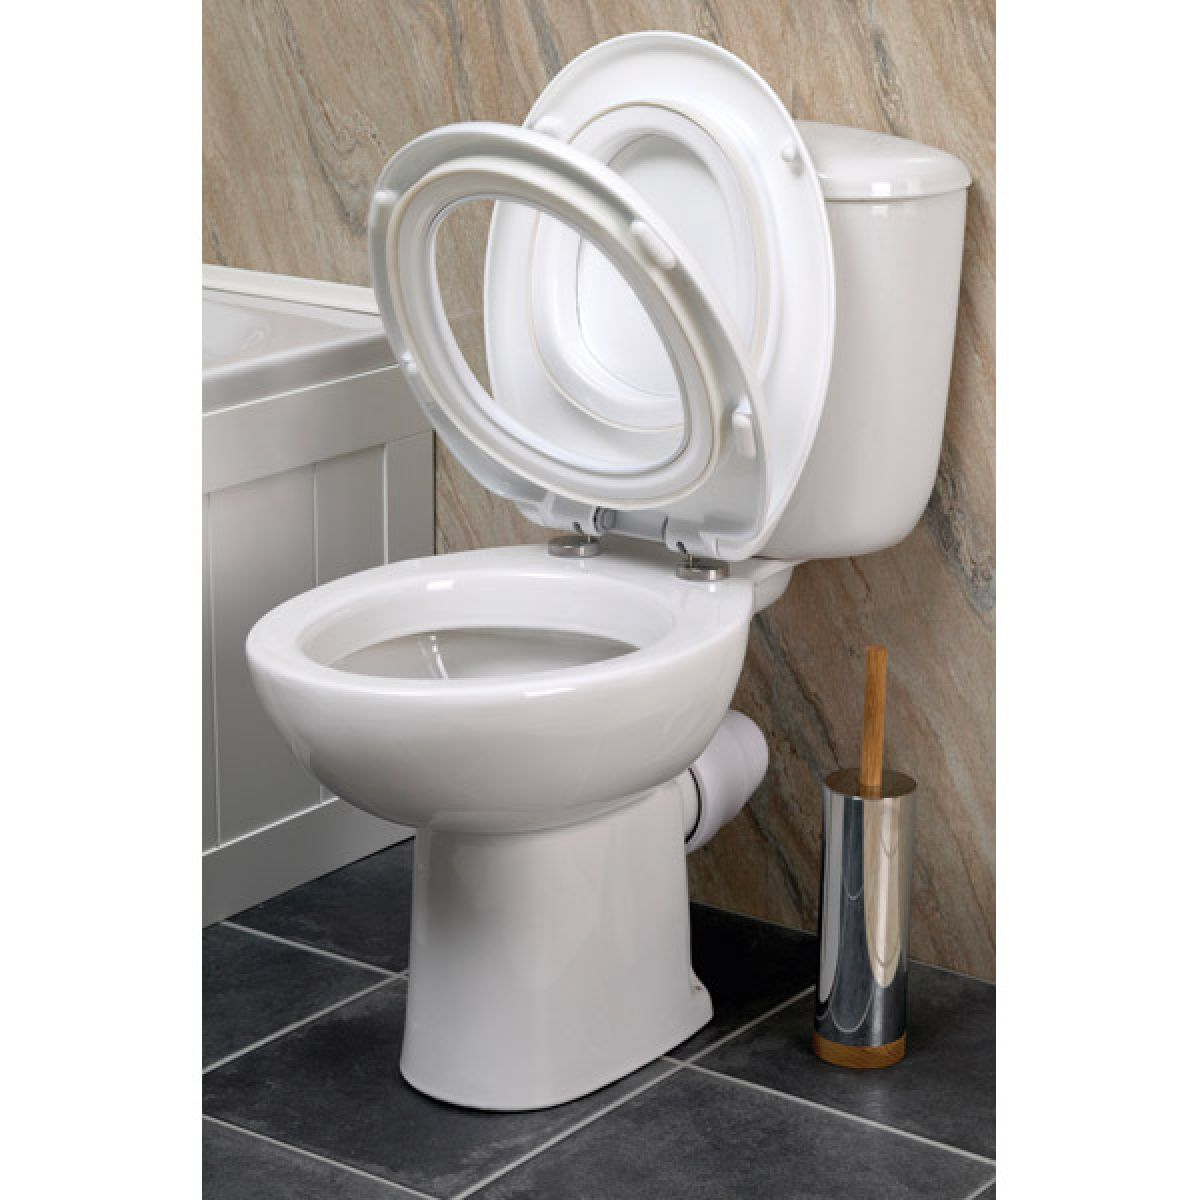 Croydex Safeflush White Toilet Seat Detail